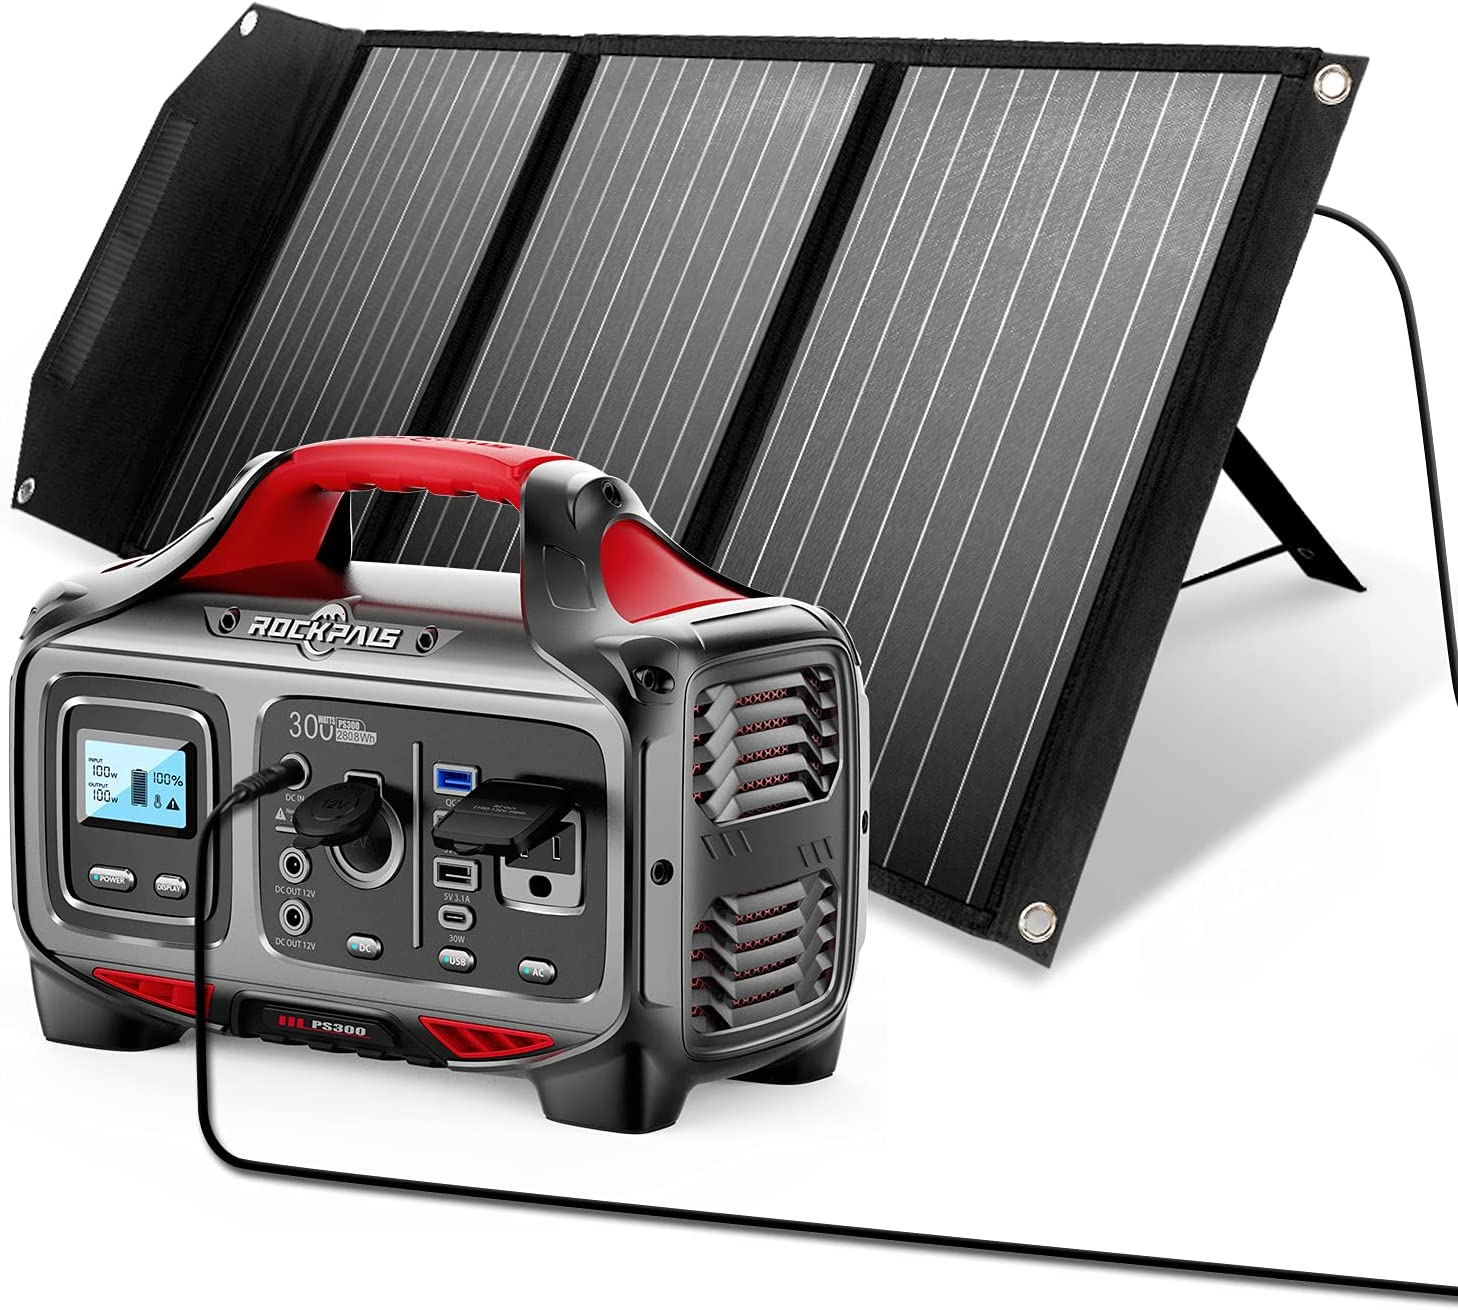 Great Solar Generator for Backup Power Outdoor Adventure and Camping ROCKPALS 300W Portable Power Station and ROCKPALS 100W Upgraded Solar Panel